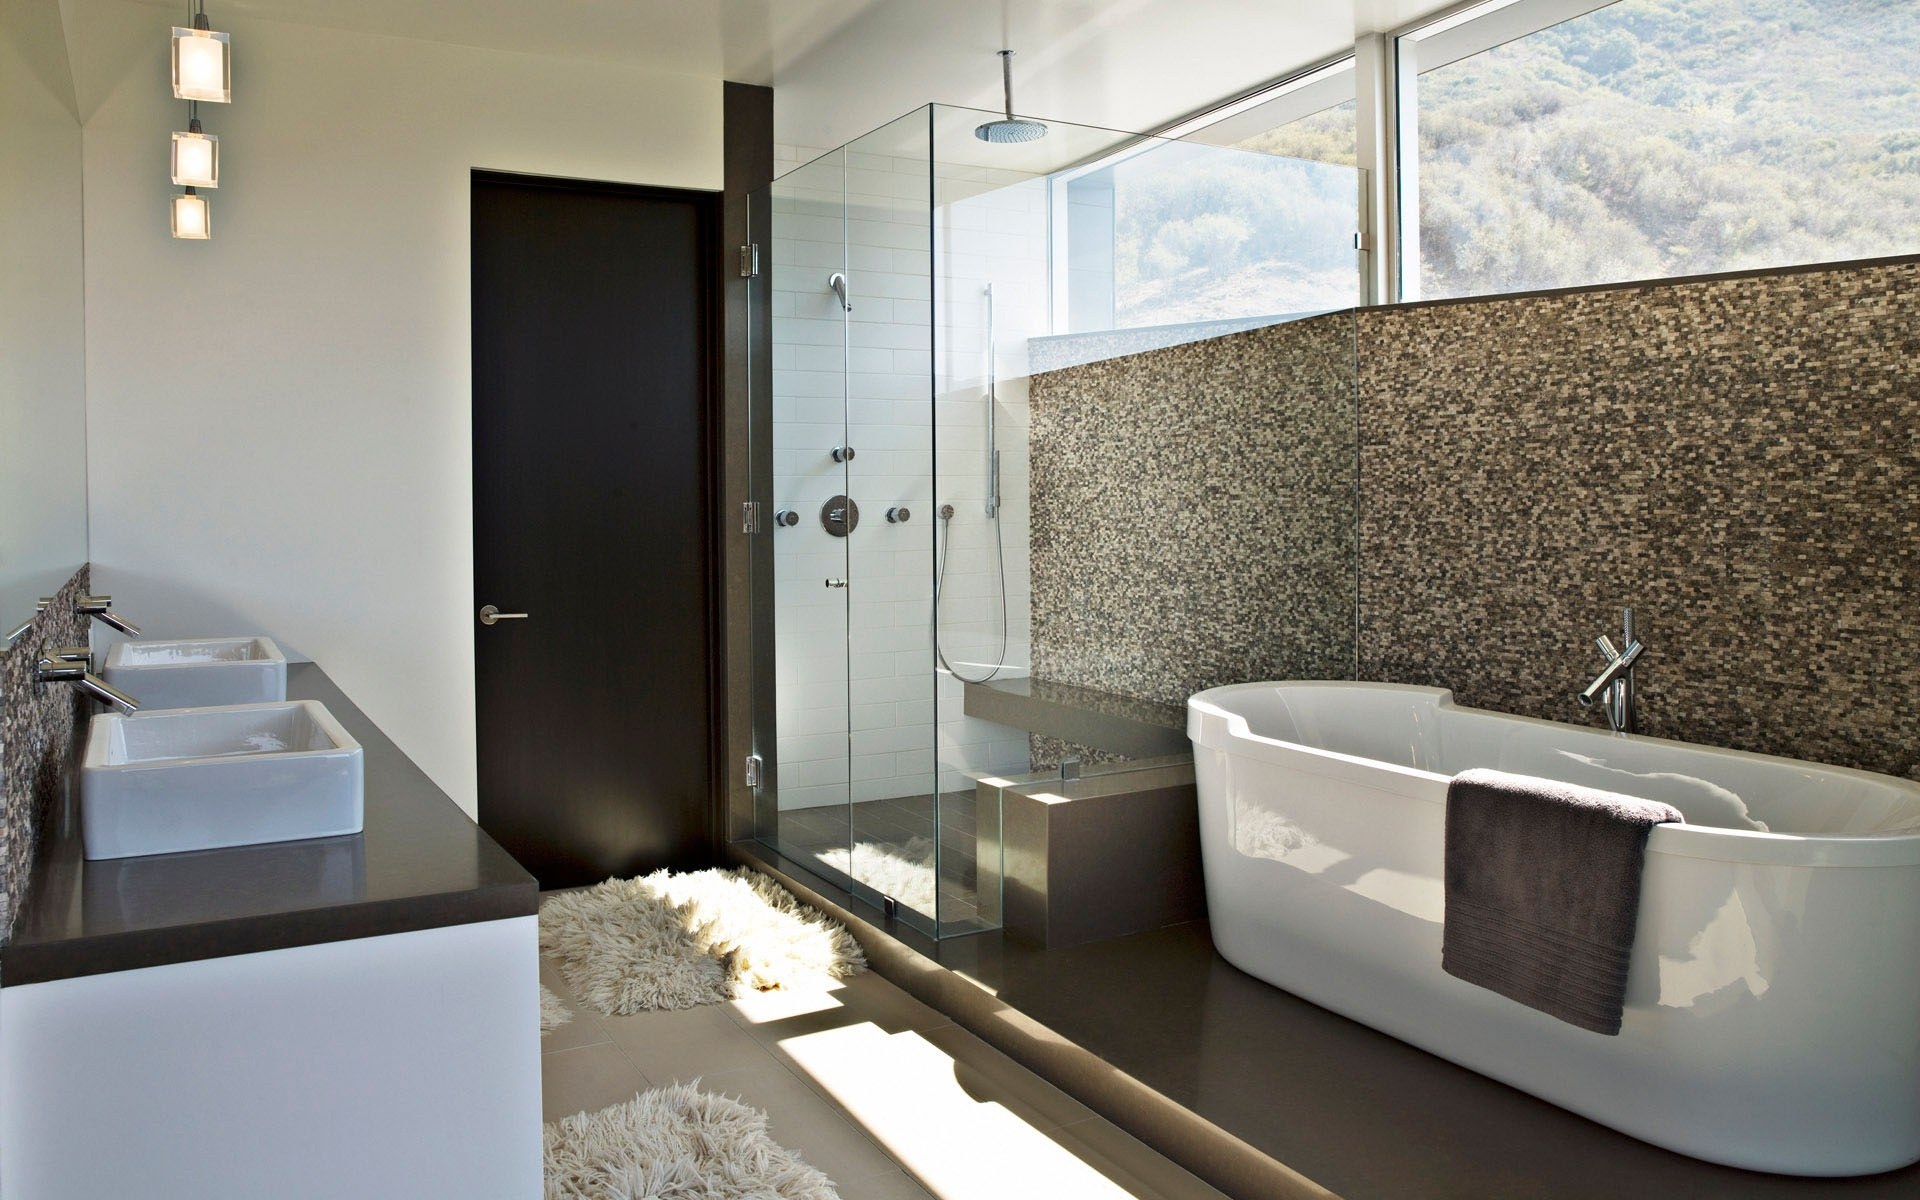 ideas-bathroom-proud-ceiling-rain-head-shower-feat-glass-divider-shower-also-white-square-bathtub-added-mosaic-wall-tile-and-fur-bath-mat-as-decorate-modern-apartment-bathroom-ideas-goodly-square-bat